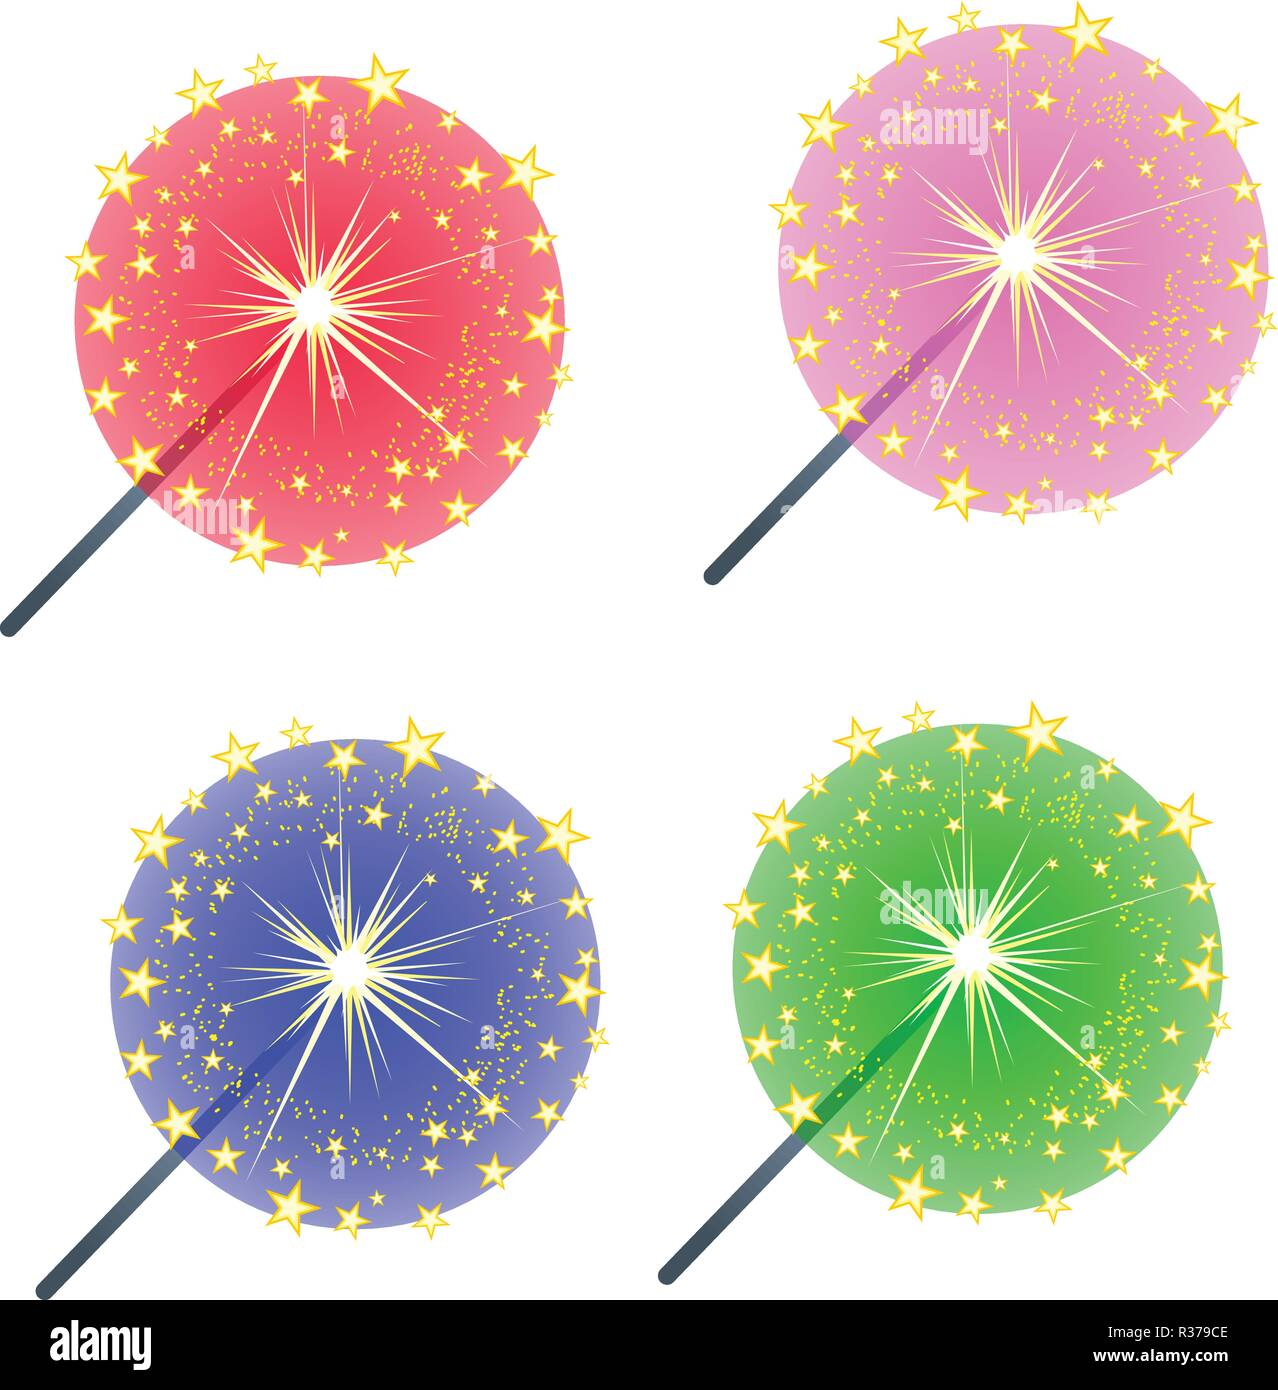 Set of colored burning sparklers isolated on white background. Sketch for greeting card, party invitation, festive poster, other cards. Vector cartoon close-up illustration. - Stock Vector